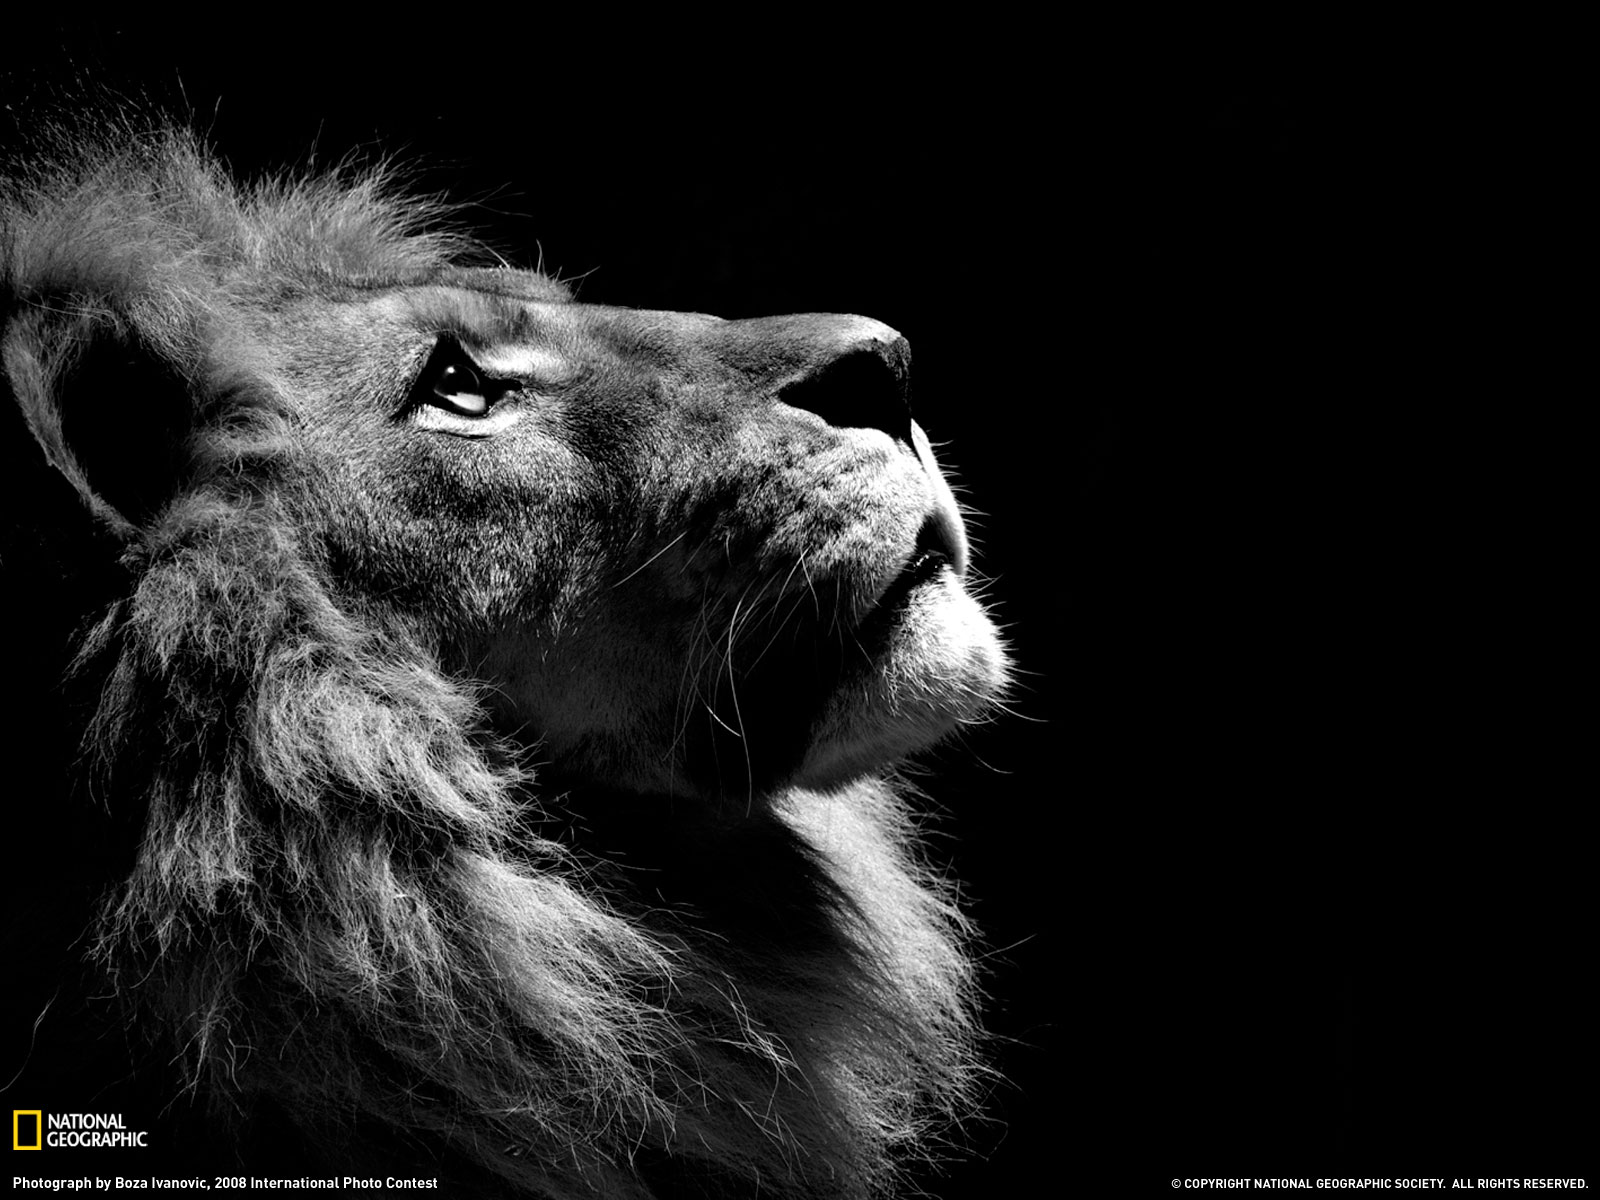 lion_black_white_wallpaper_hd.jpeg